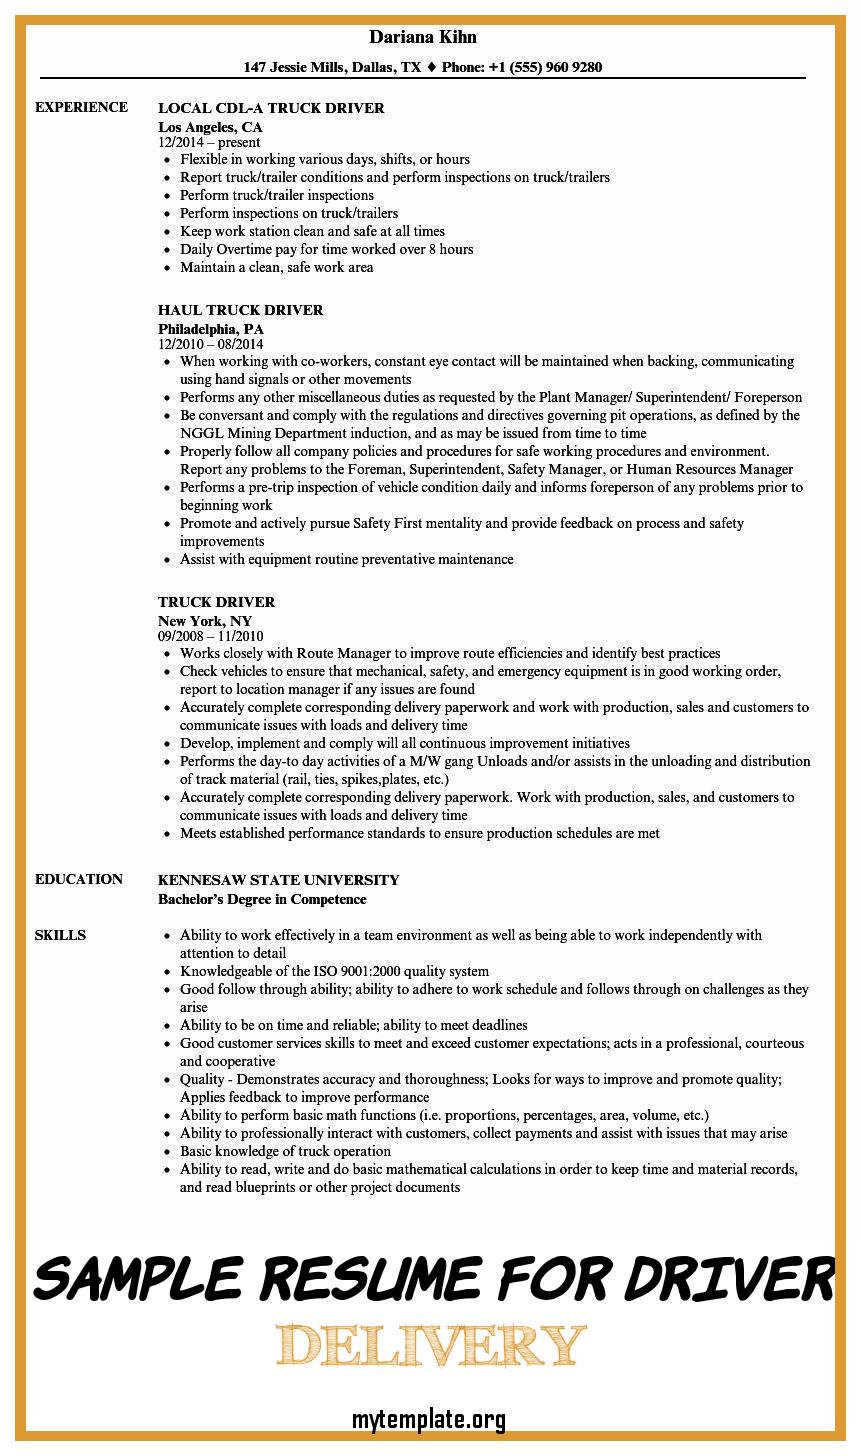 sample resume for driver delivery free templates limousine of pin marketing summary Resume Limousine Driver Resume